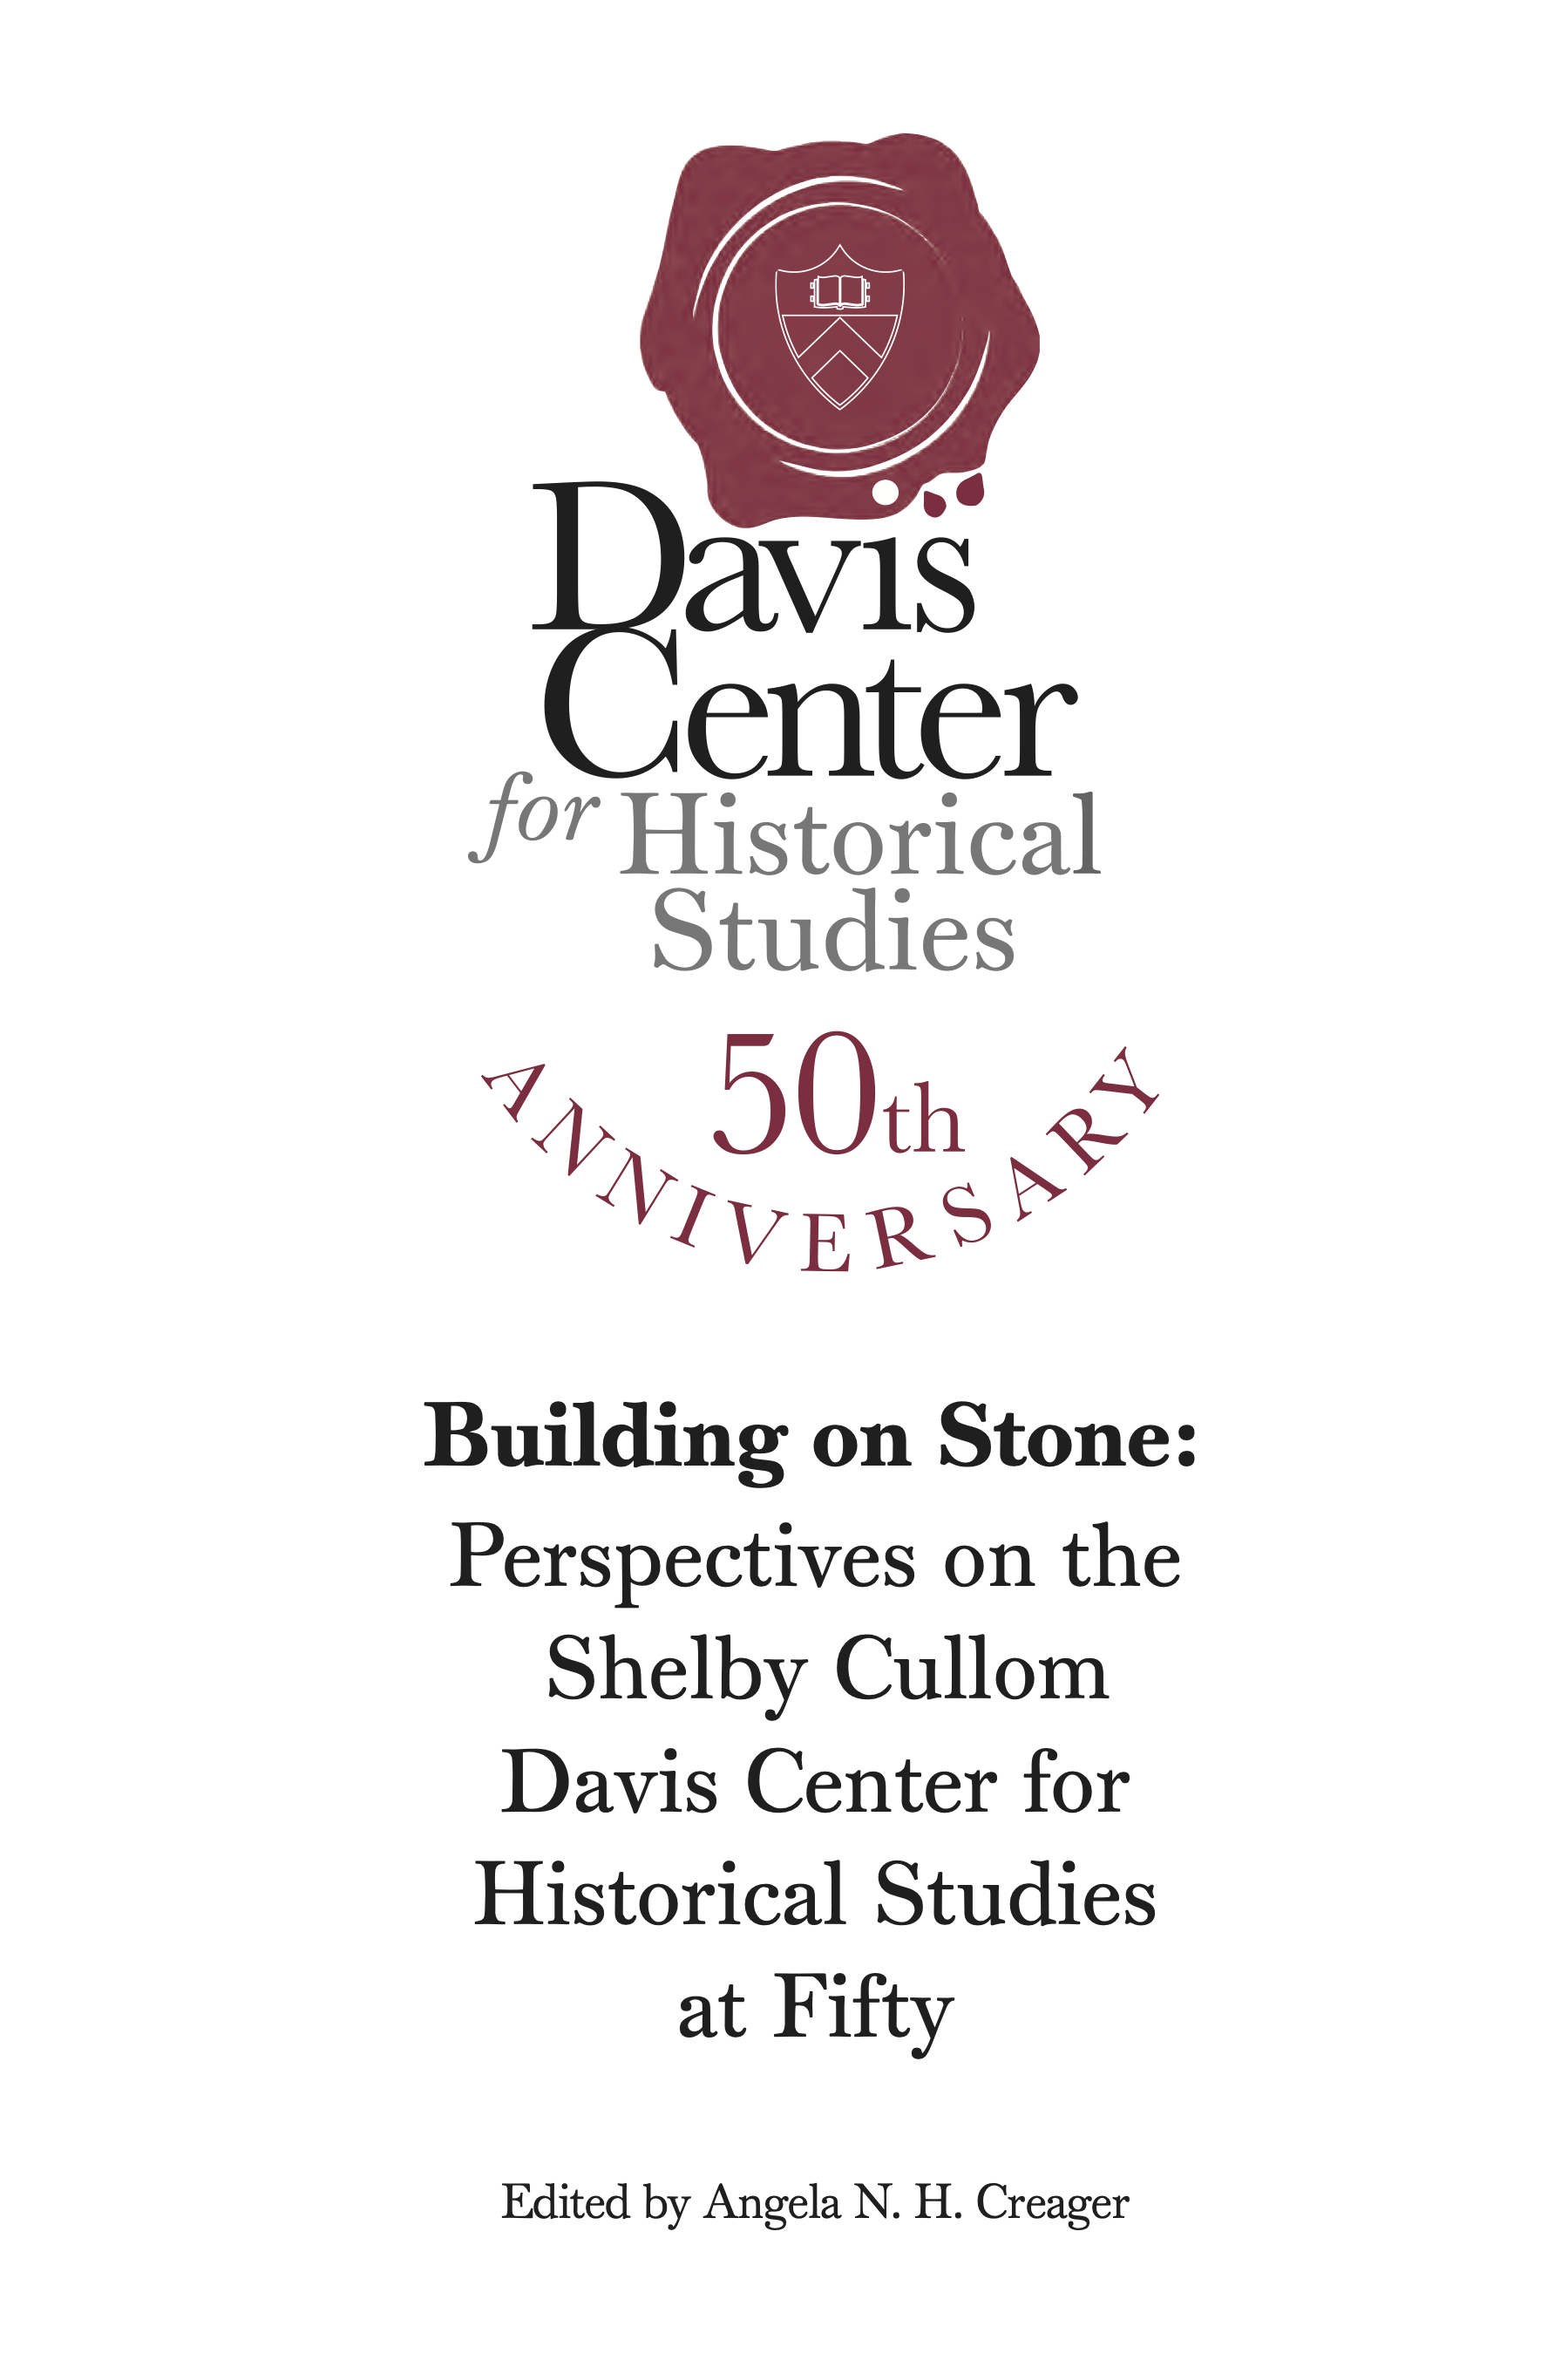 Cover for Volume 2: Building on Stone: Perspectives on the Shelby Cullom Davis Center at Fifty